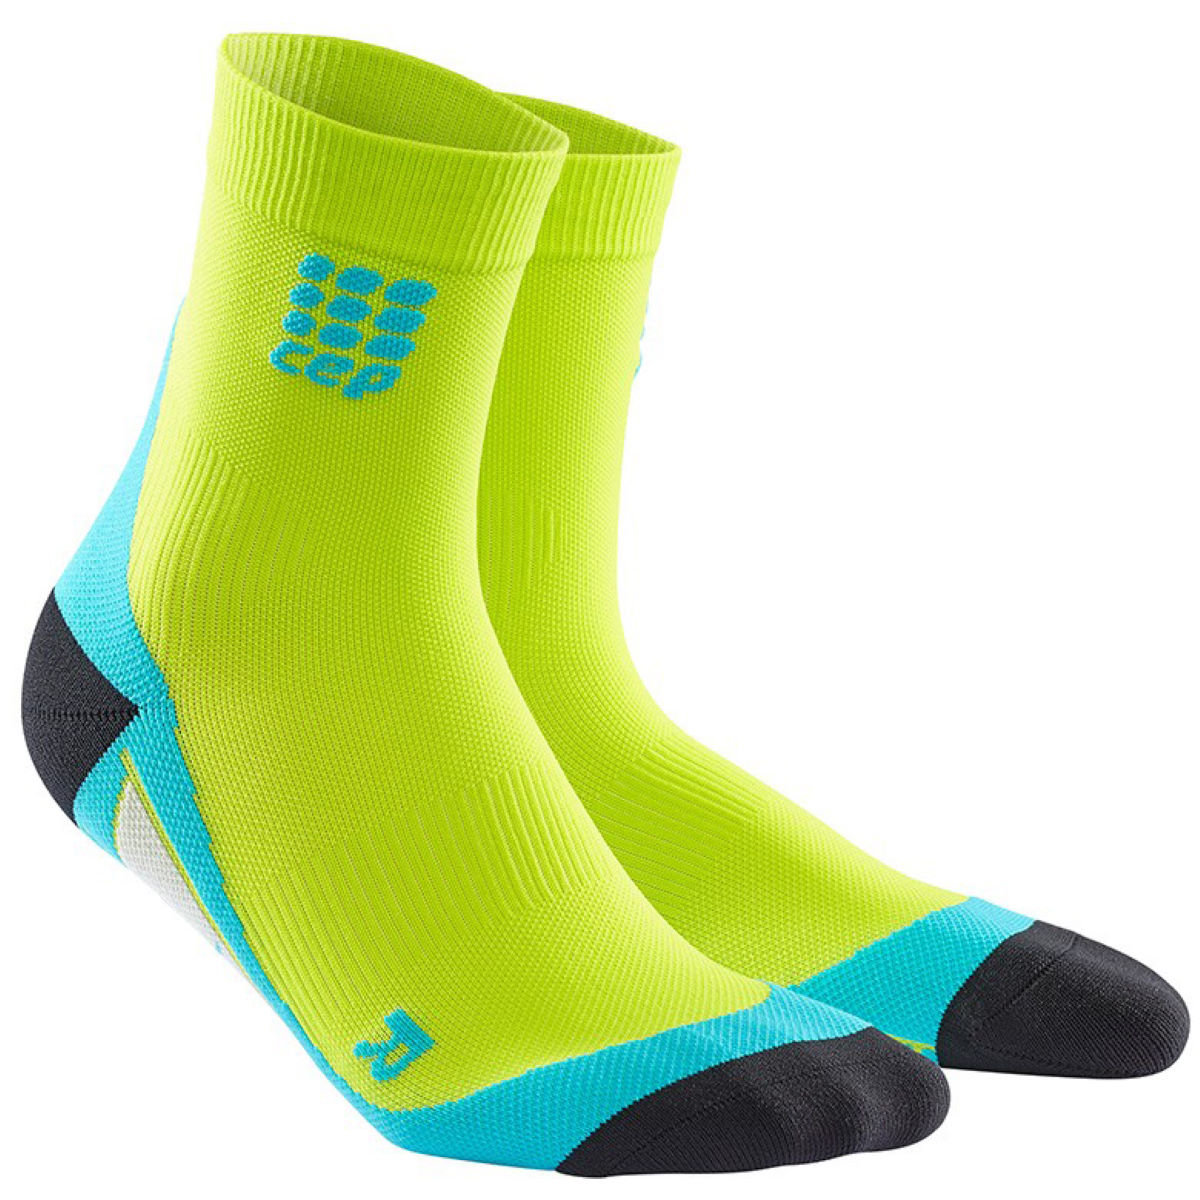 Chaussettes CEP Short - III Lime/Hawaii Blue Chaussettes